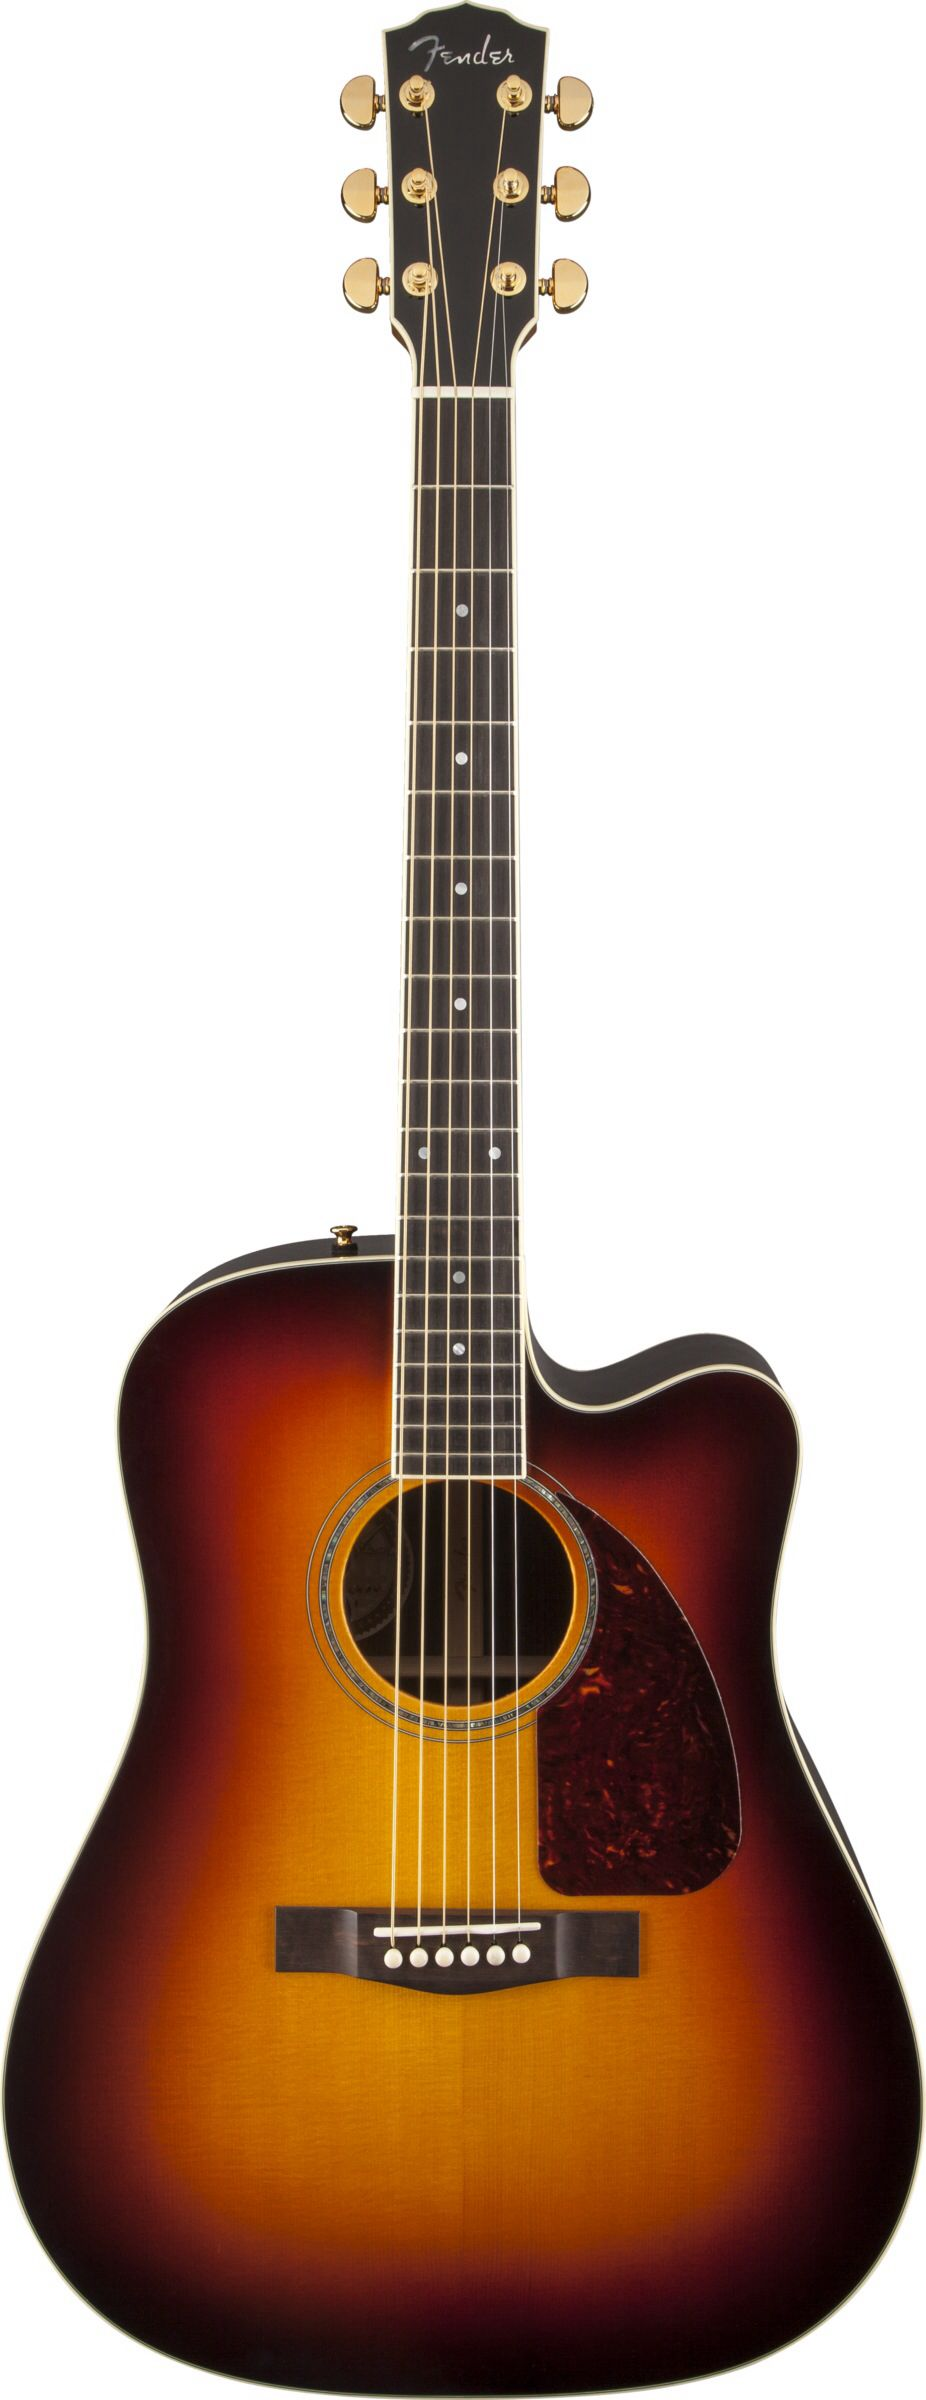 Fender Tpd 2ce Dreadnought Acoustic Guitar Guitar Acoustic Guitar Fender Acoustic Electric Guitar